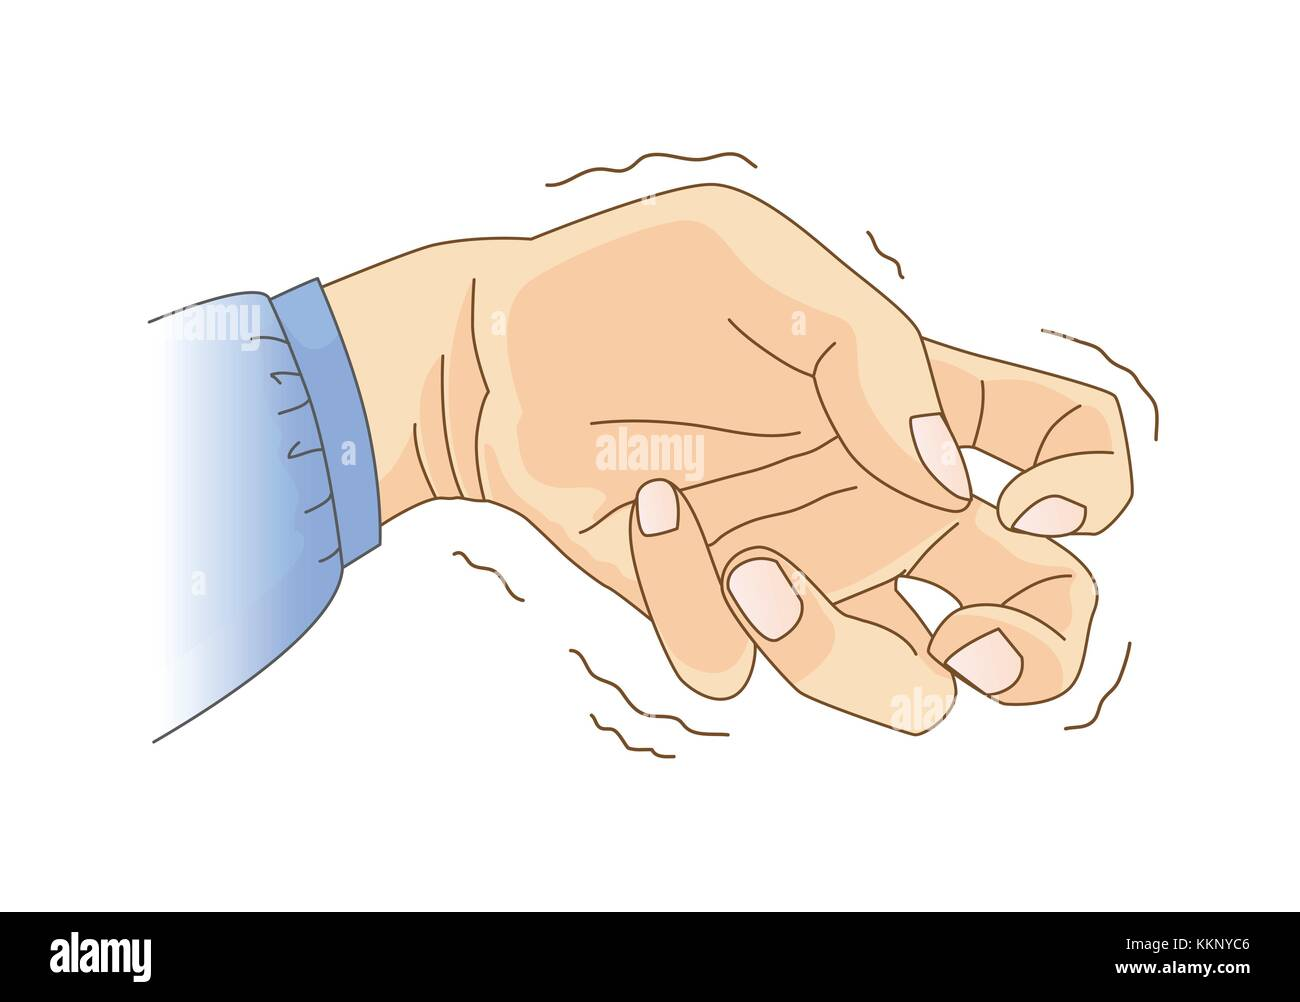 Finger and wrist bend and tremor symptom. - Stock Image